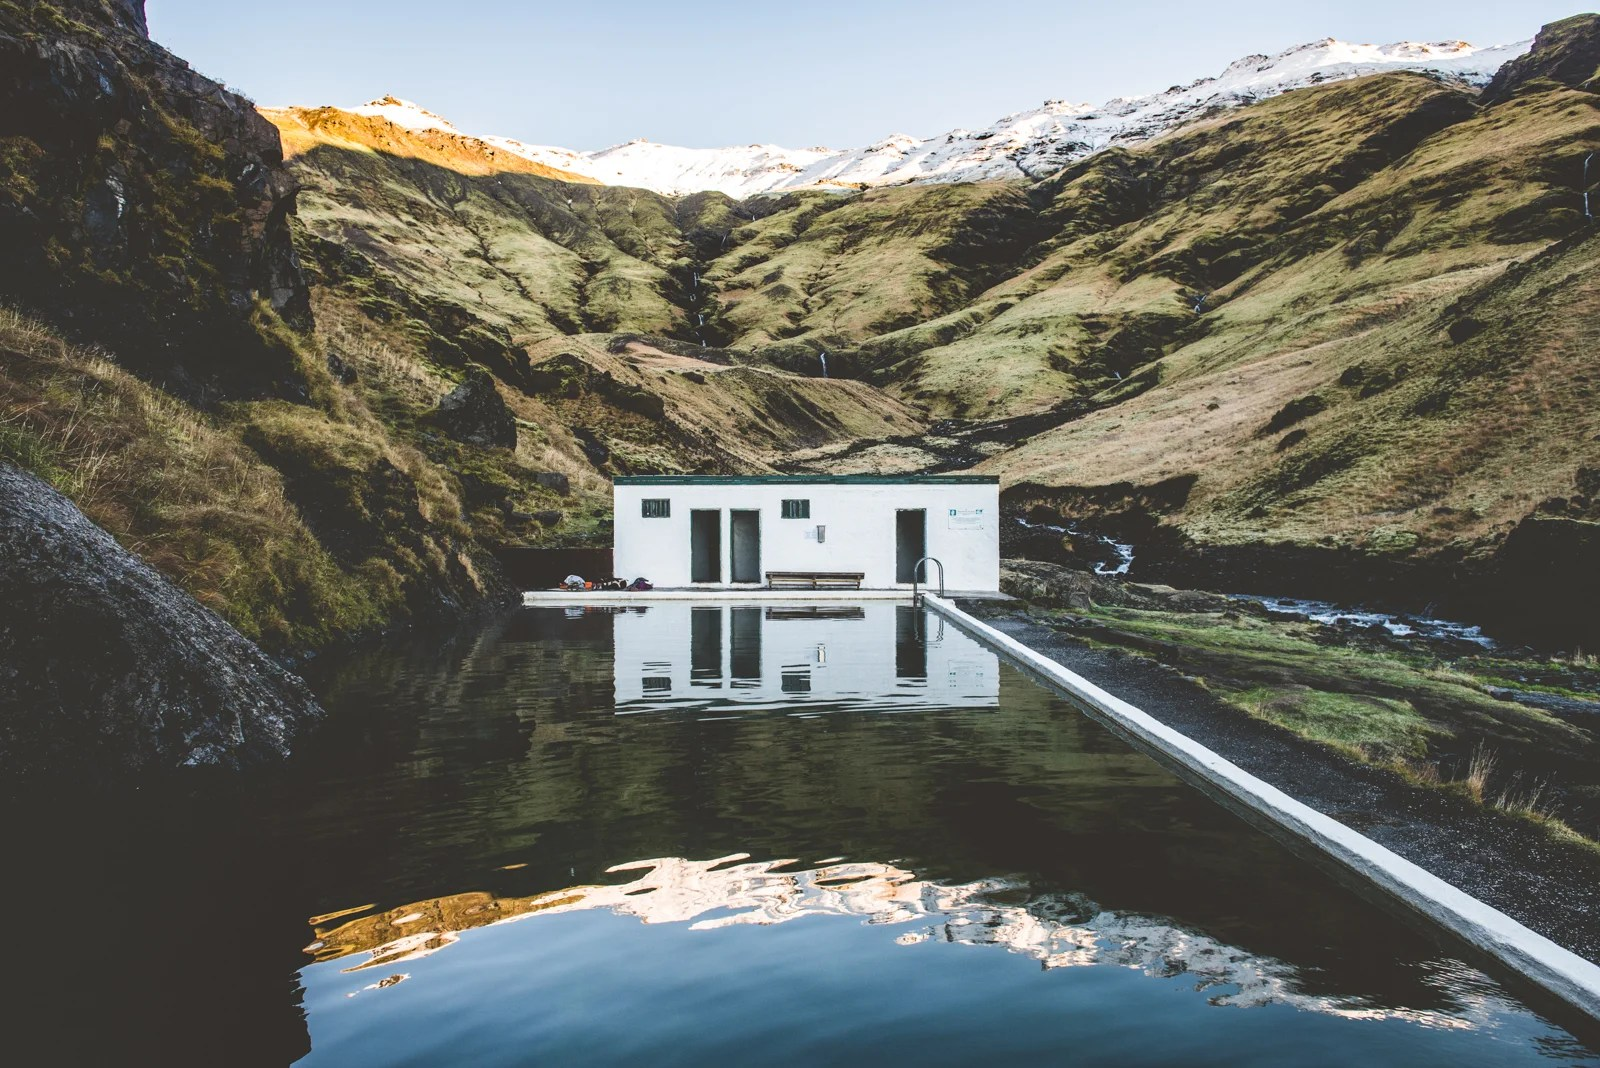 10 Icelandic Hot Springs That Are Cooler Than the Blue Lagoon